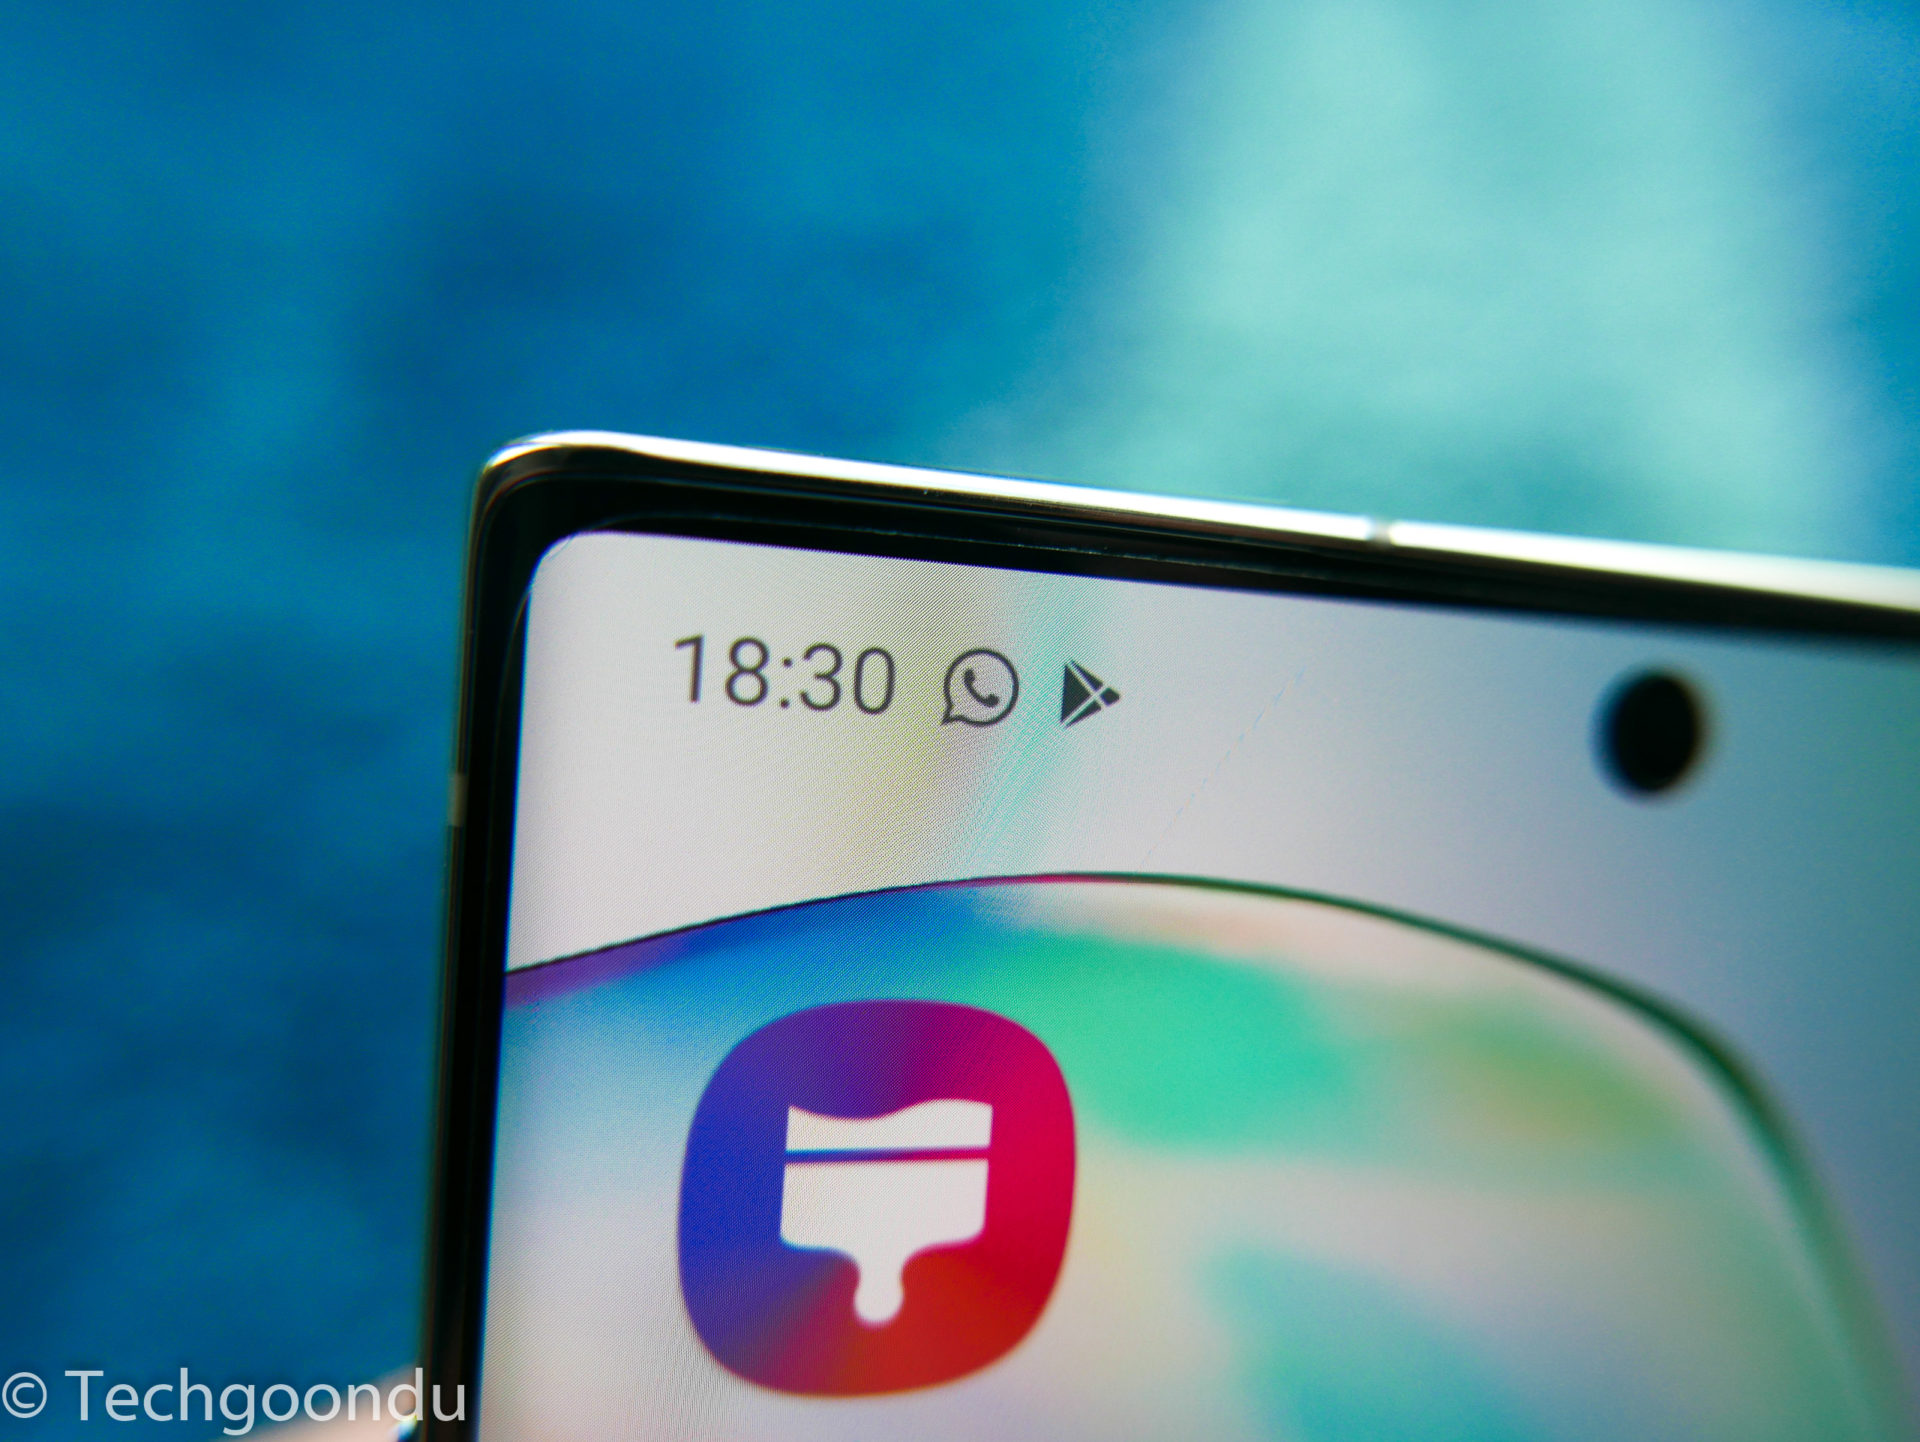 Goondu review: Samsung Galaxy Note 10+ is well made but